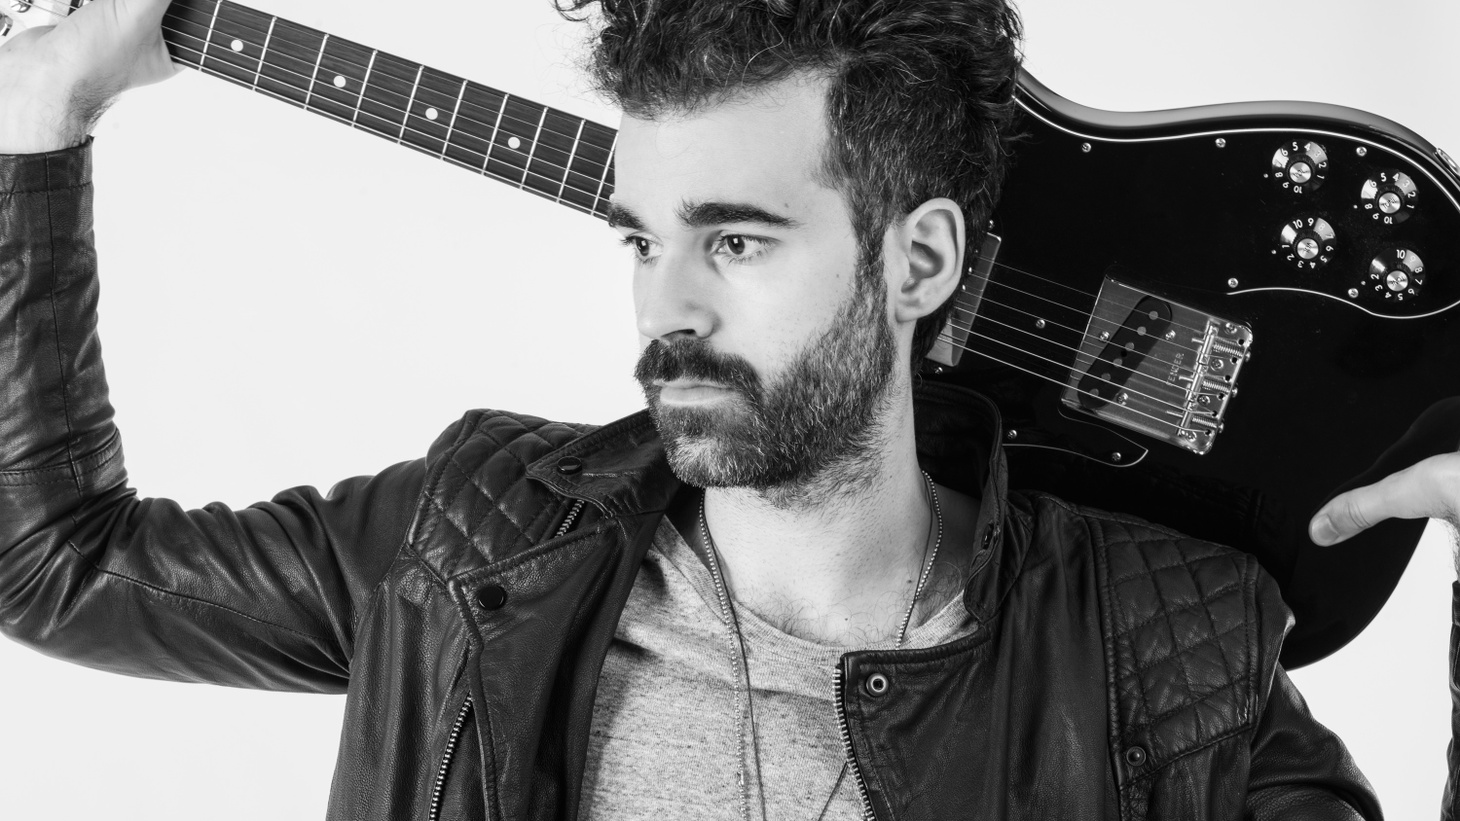 Bay Area band Geographer has been on a roll with a string of sold-out shows and a growing fan base.